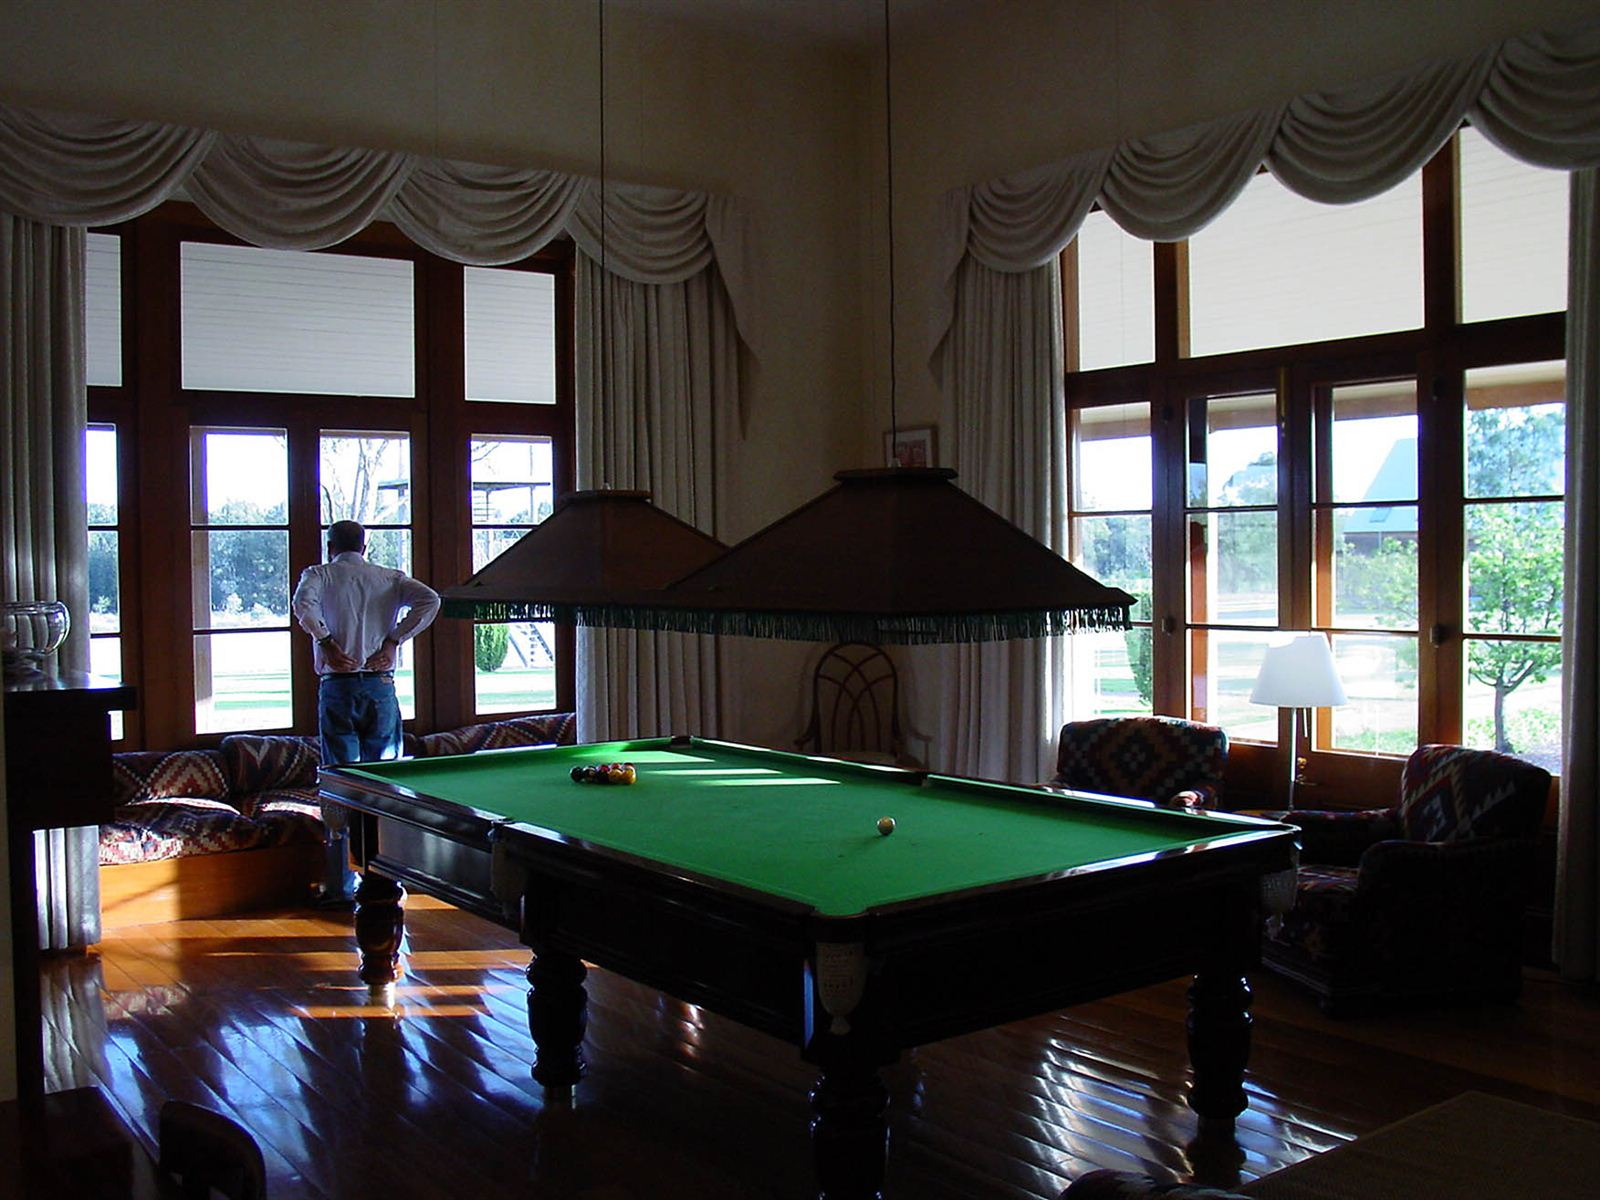 Billiards at the Homestead